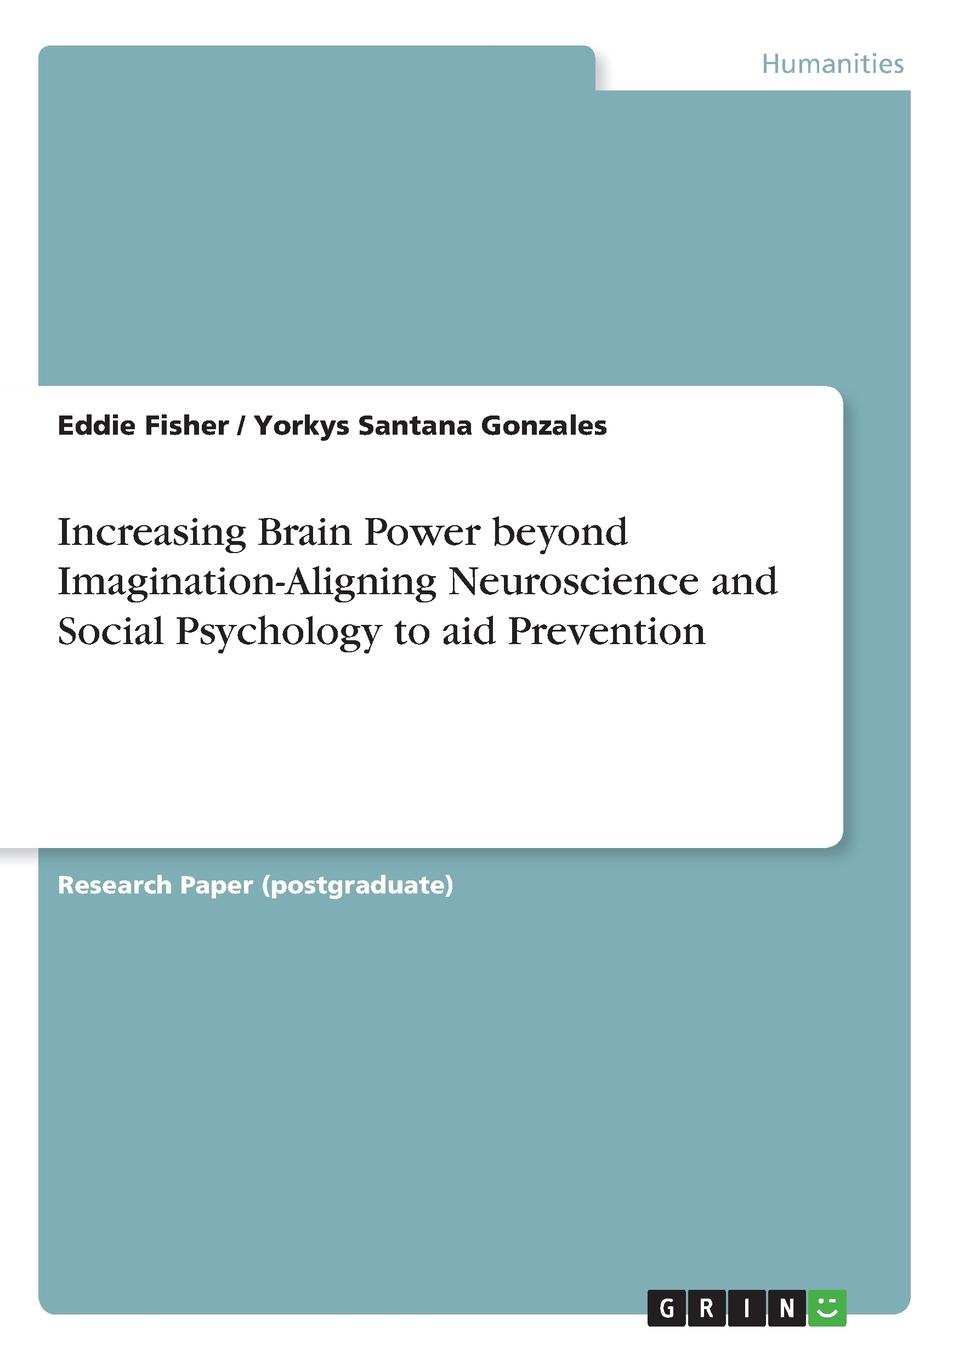 Eddie Fisher, Yorkys Santana Gonzales Increasing Brain Power beyond Imagination-Aligning Neuroscience and Social Psychology to aid Prevention the rat brain in stereotaxic coordinates